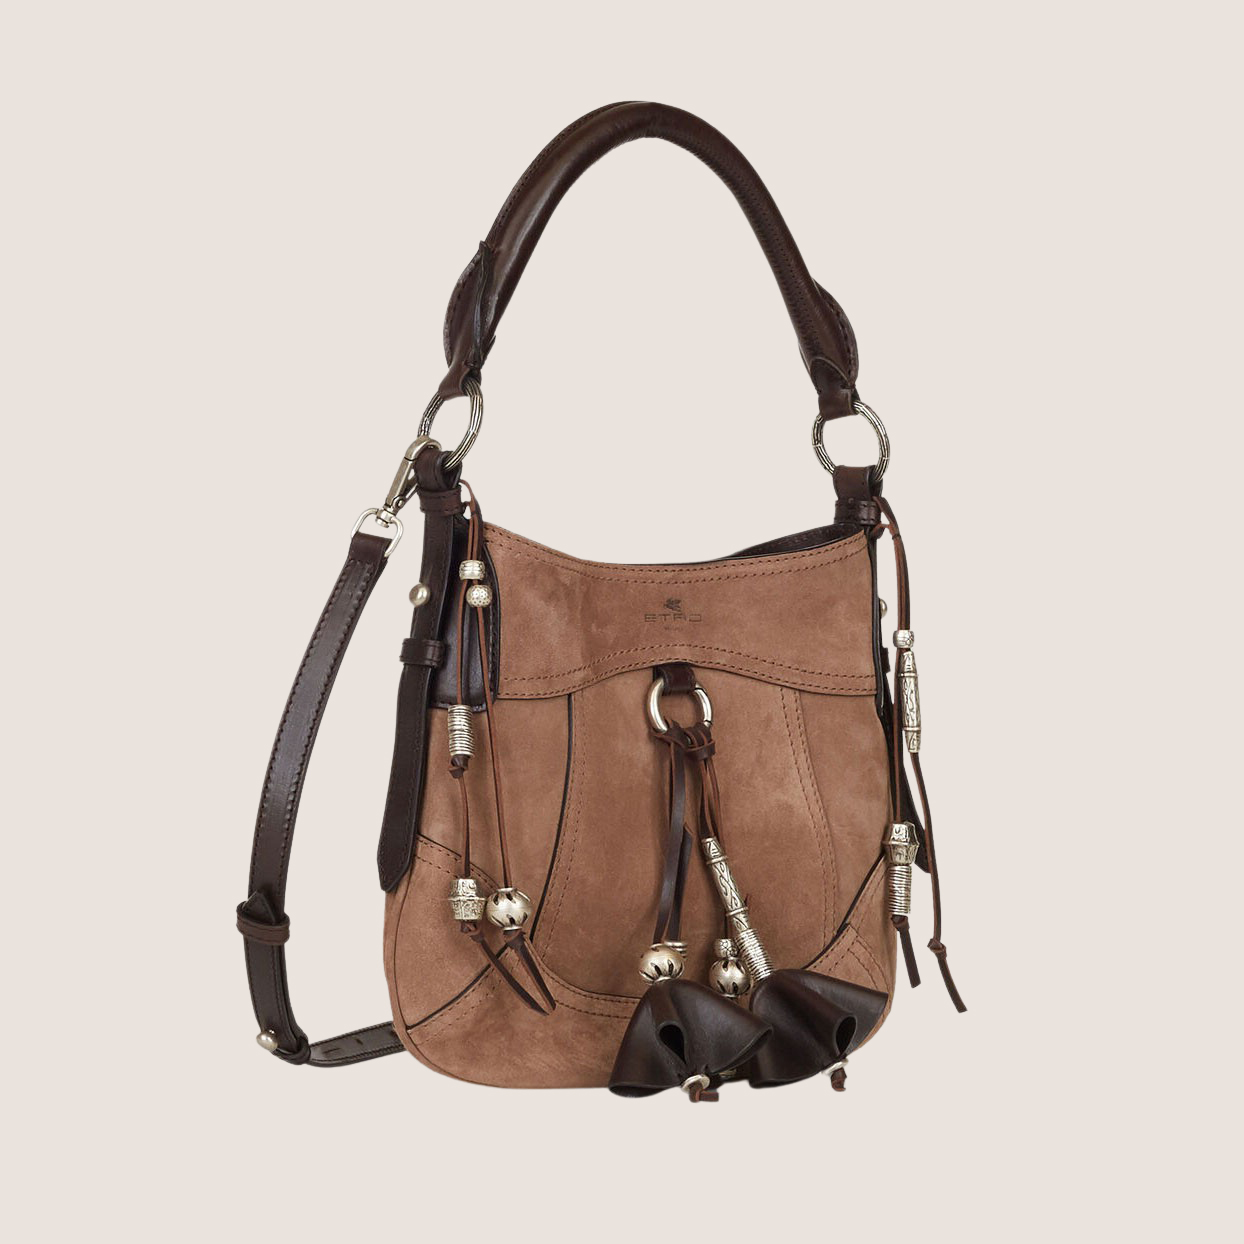 Suede Bag With Tassels - Small